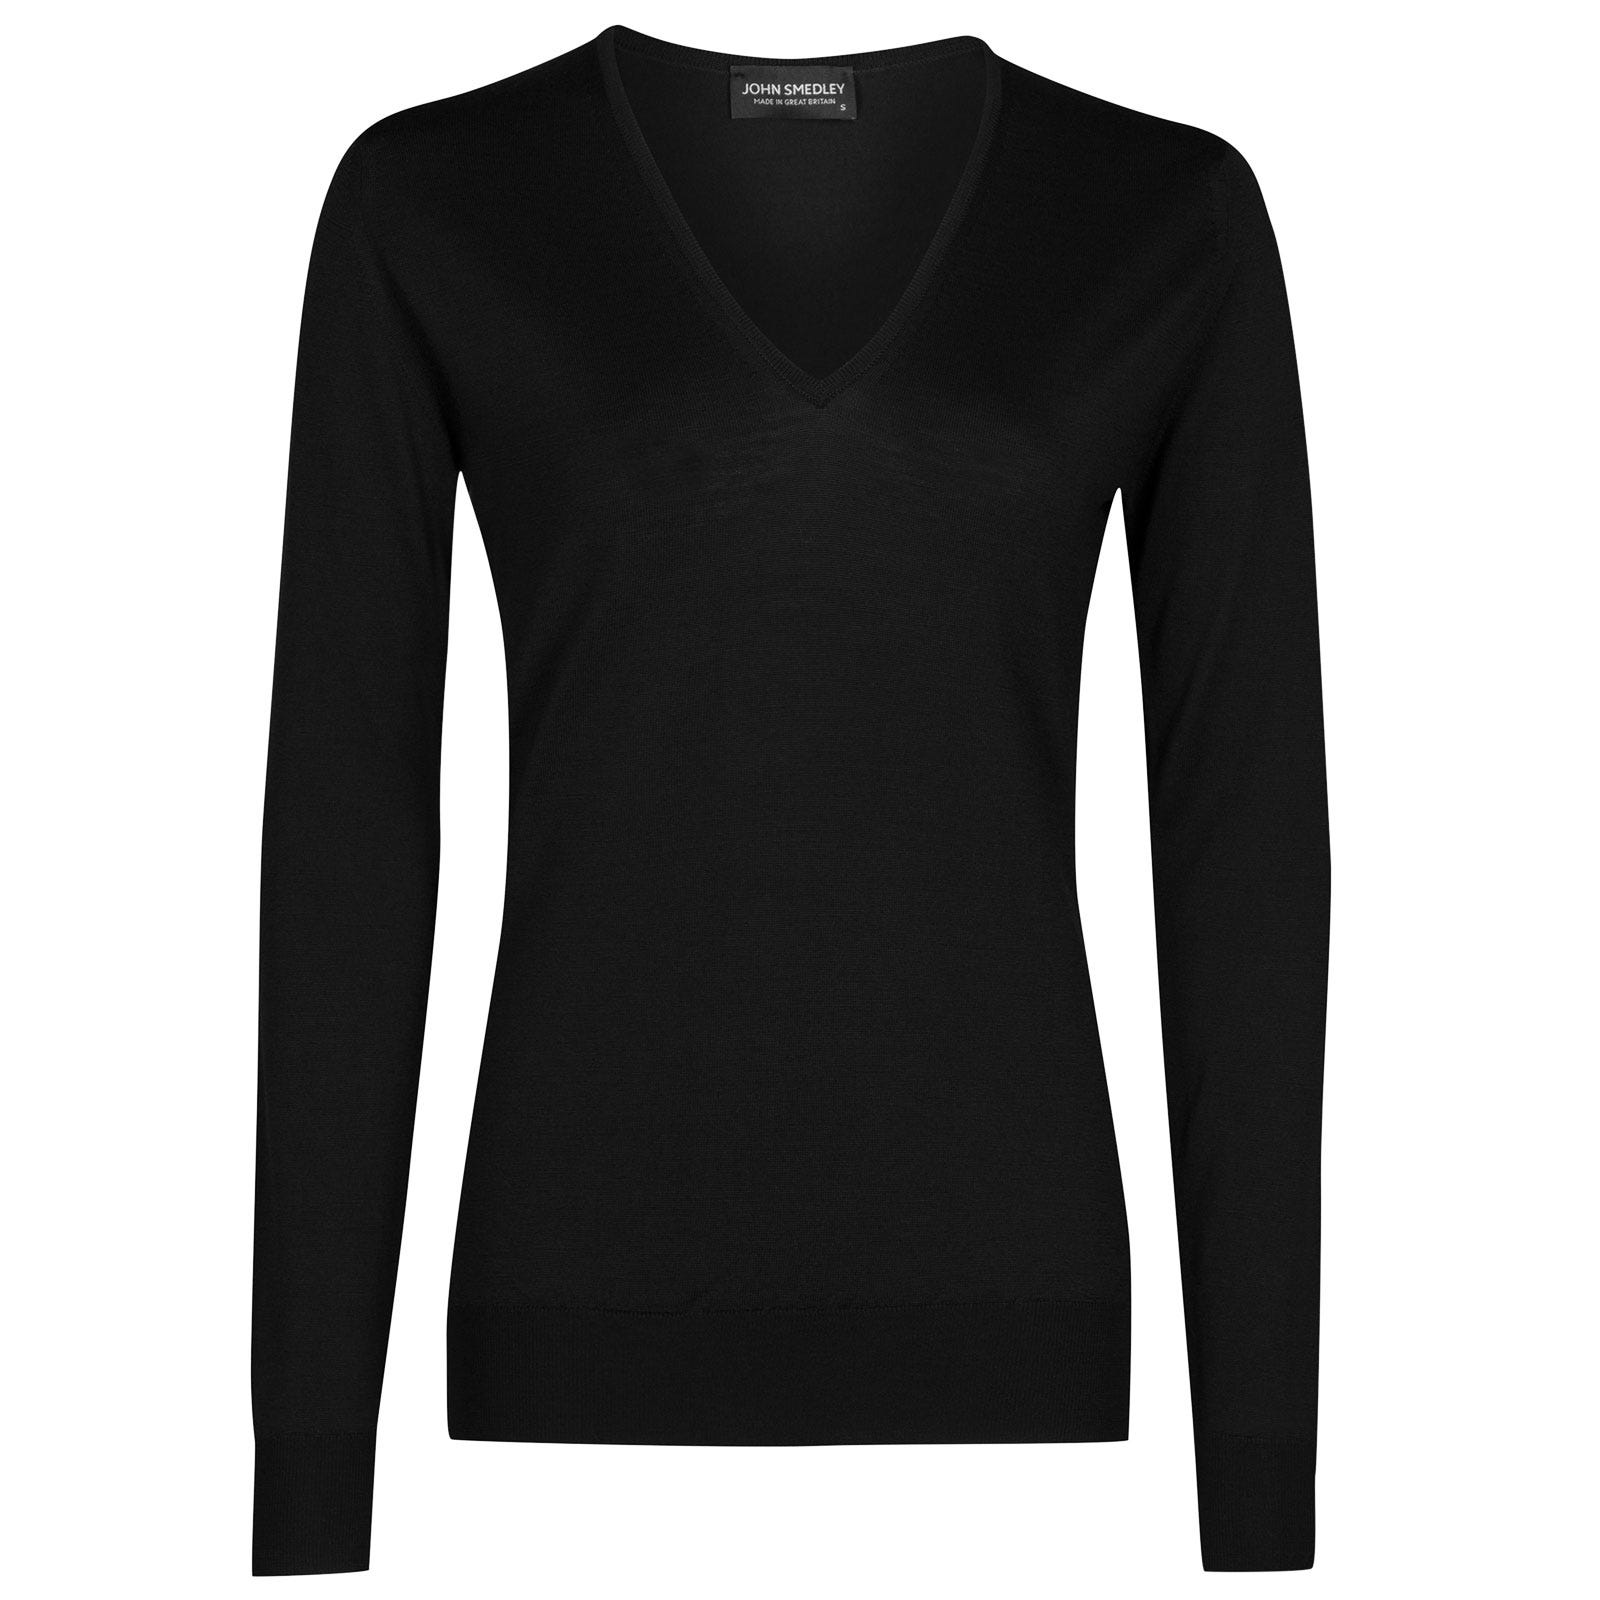 John Smedley orchid Merino Wool Sweater in Black-M